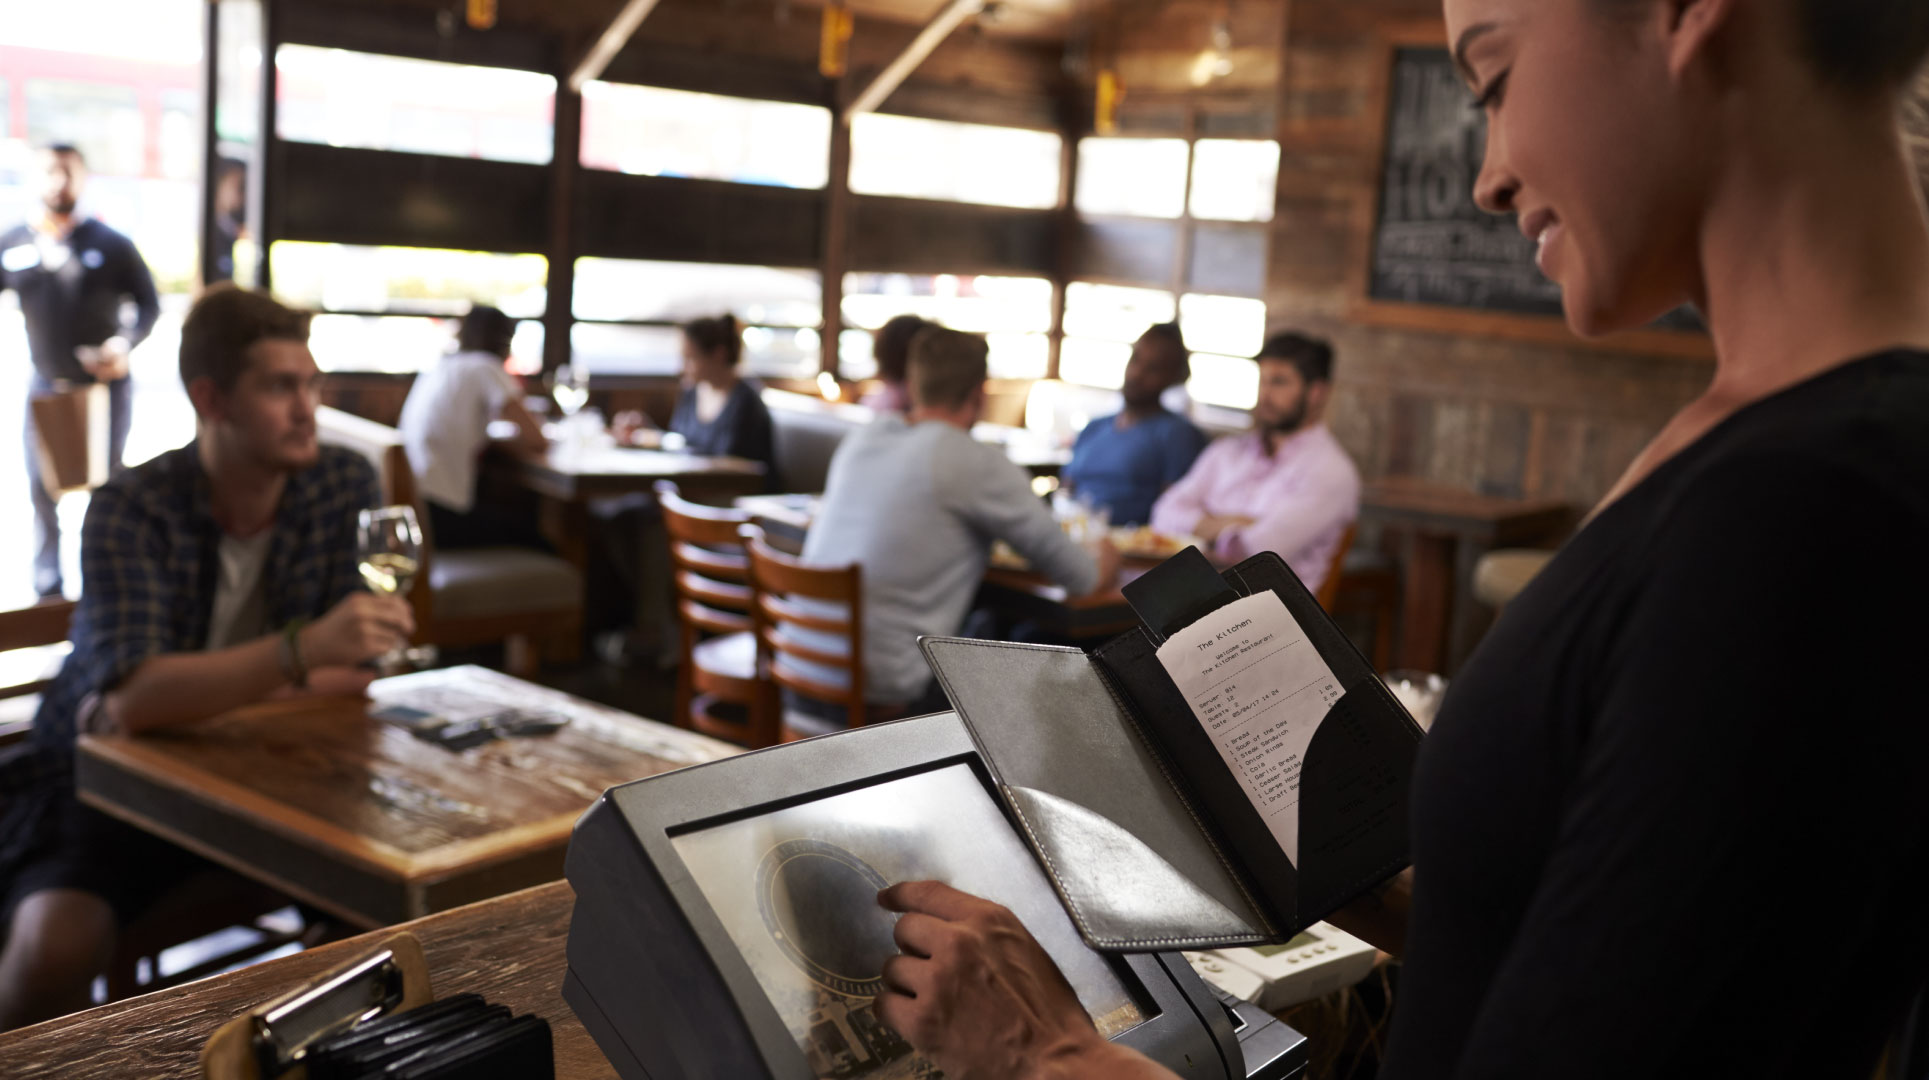 Restaurant Loyalty: Turn Guests into Fans